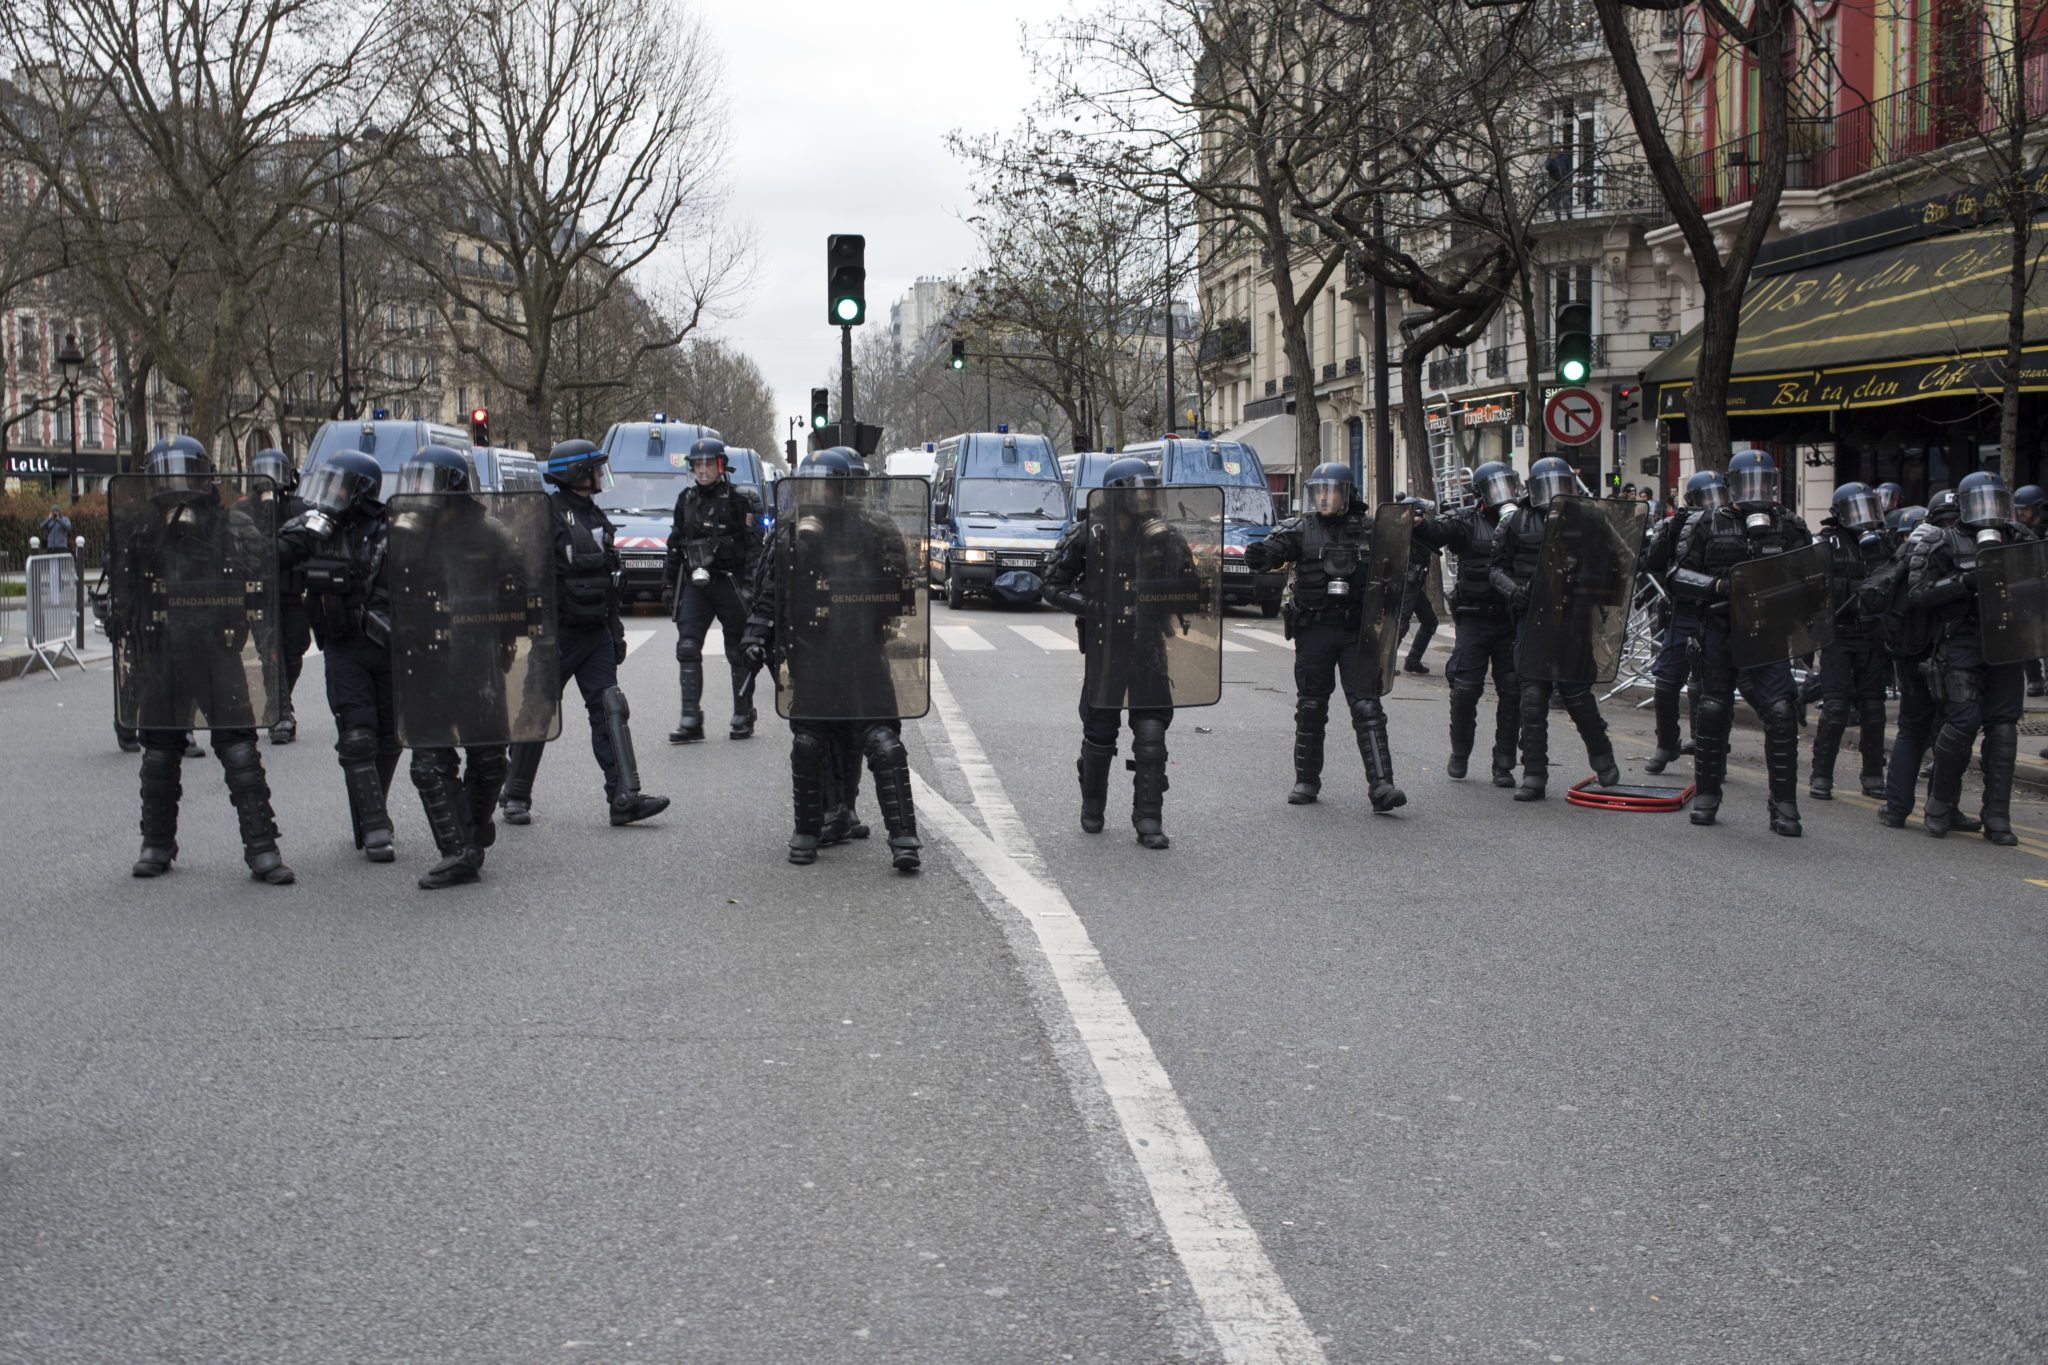 France: Unchecked clampdown on protests under guise of fighting terrorism